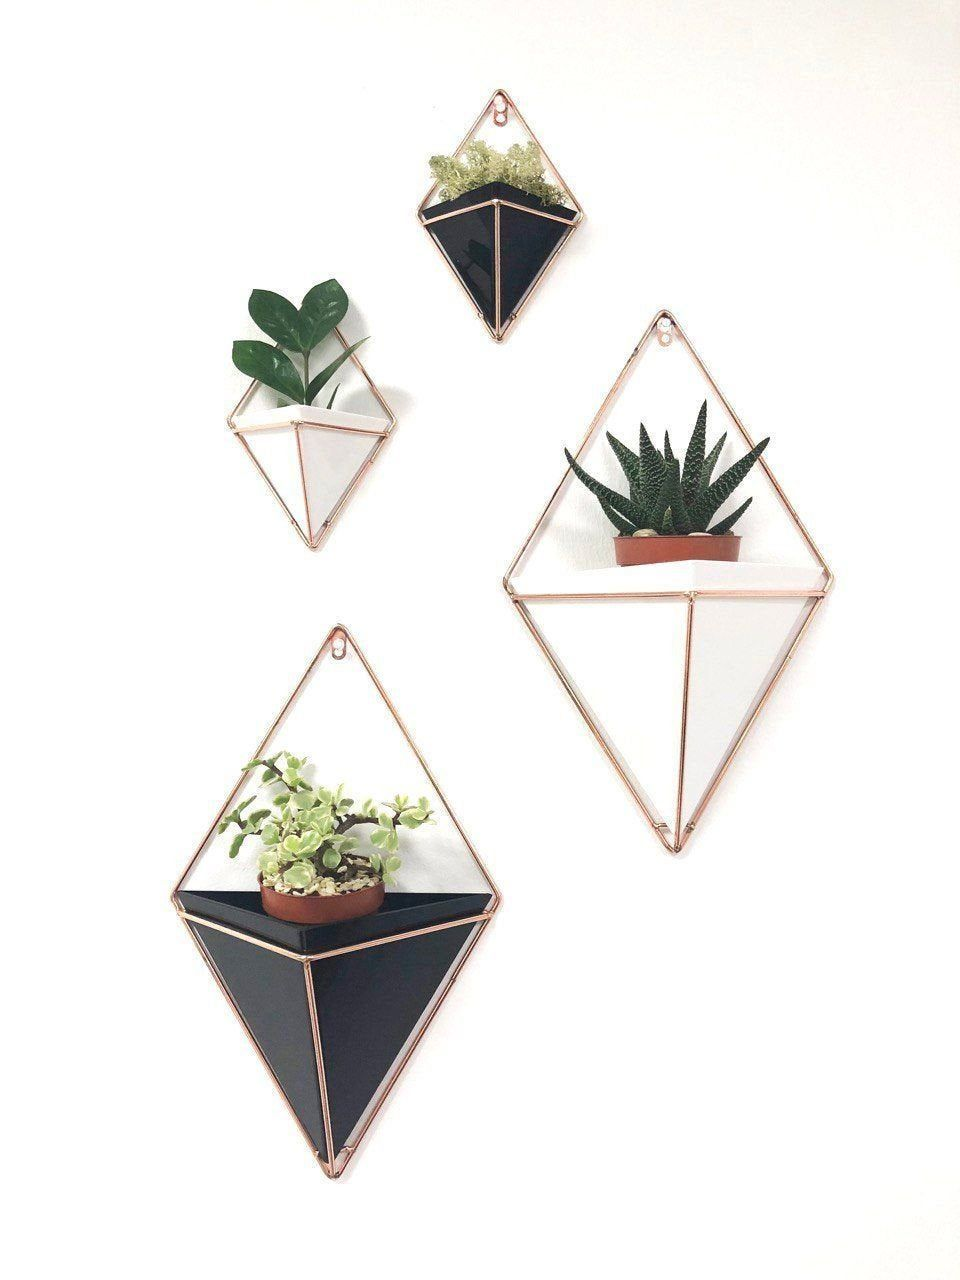 Geometric Wall Planter Indoor Geometric Planter Wall Hanging Planter Hanging Terrarium Wa Geometric Wall Planter Indoor Geometric Planter Wall Hanging Planter Hanging Ter...